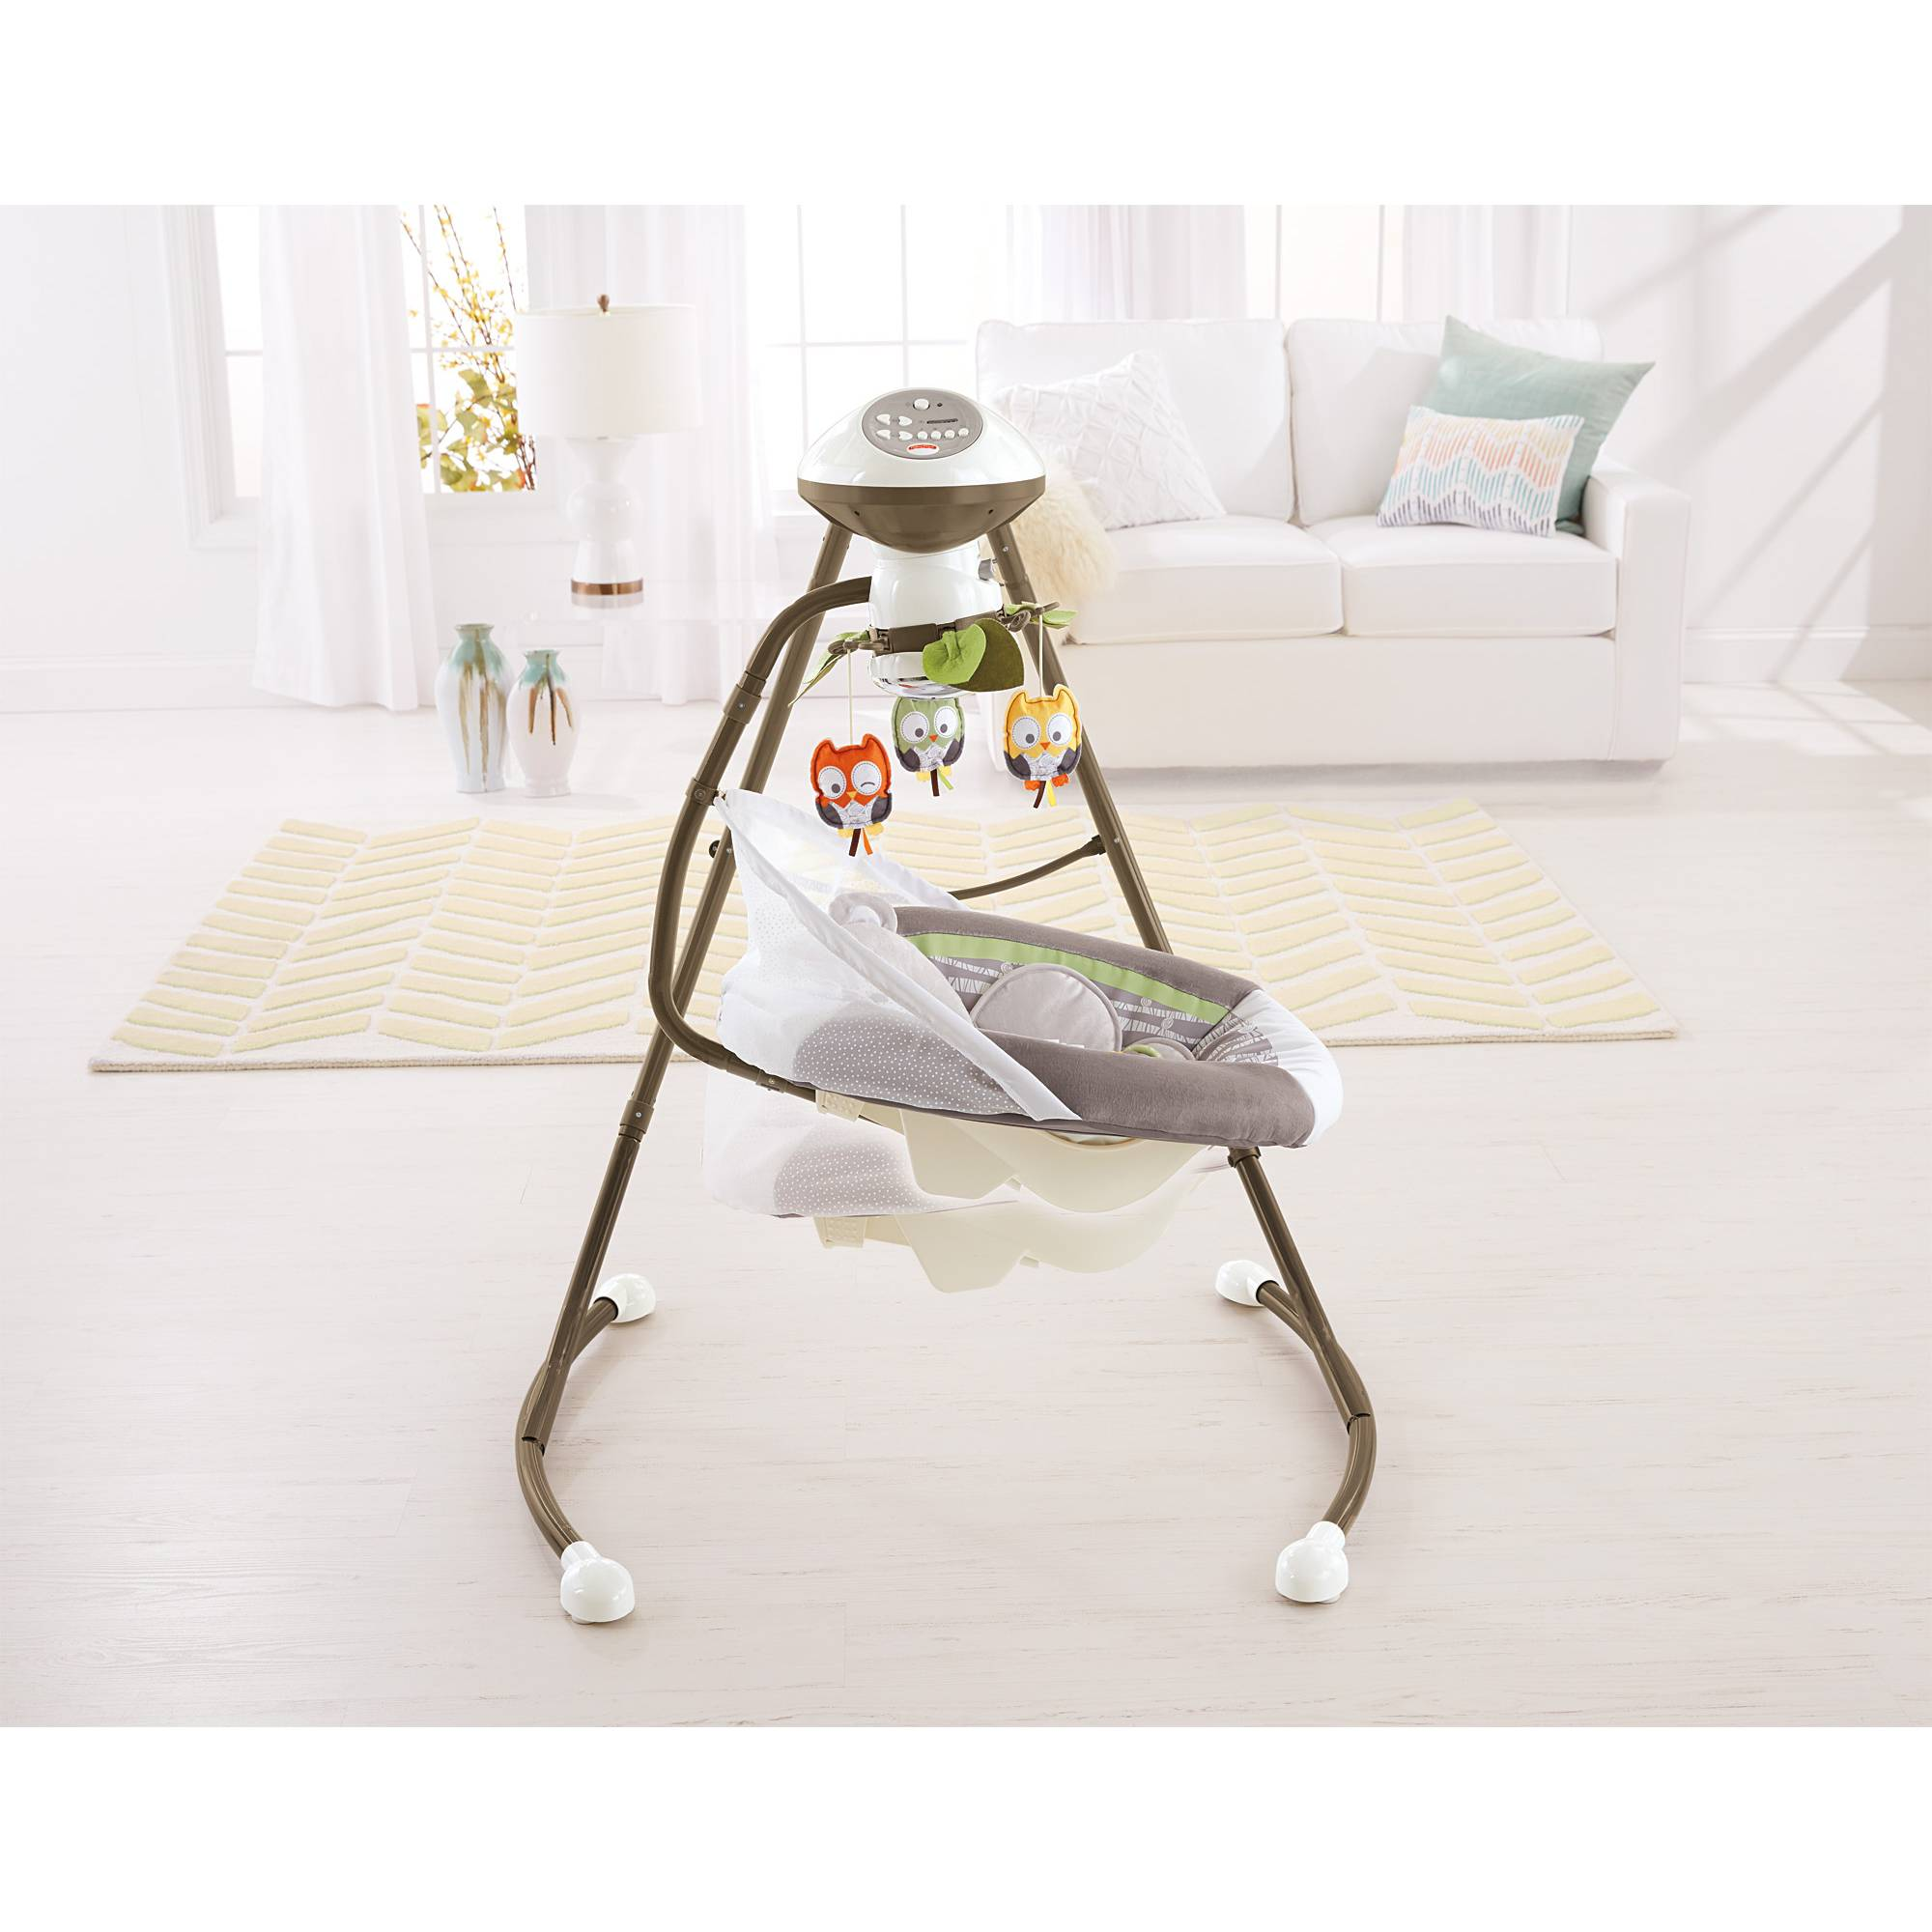 Fisher Price Cradle N Swing With 6 Speeds My Little